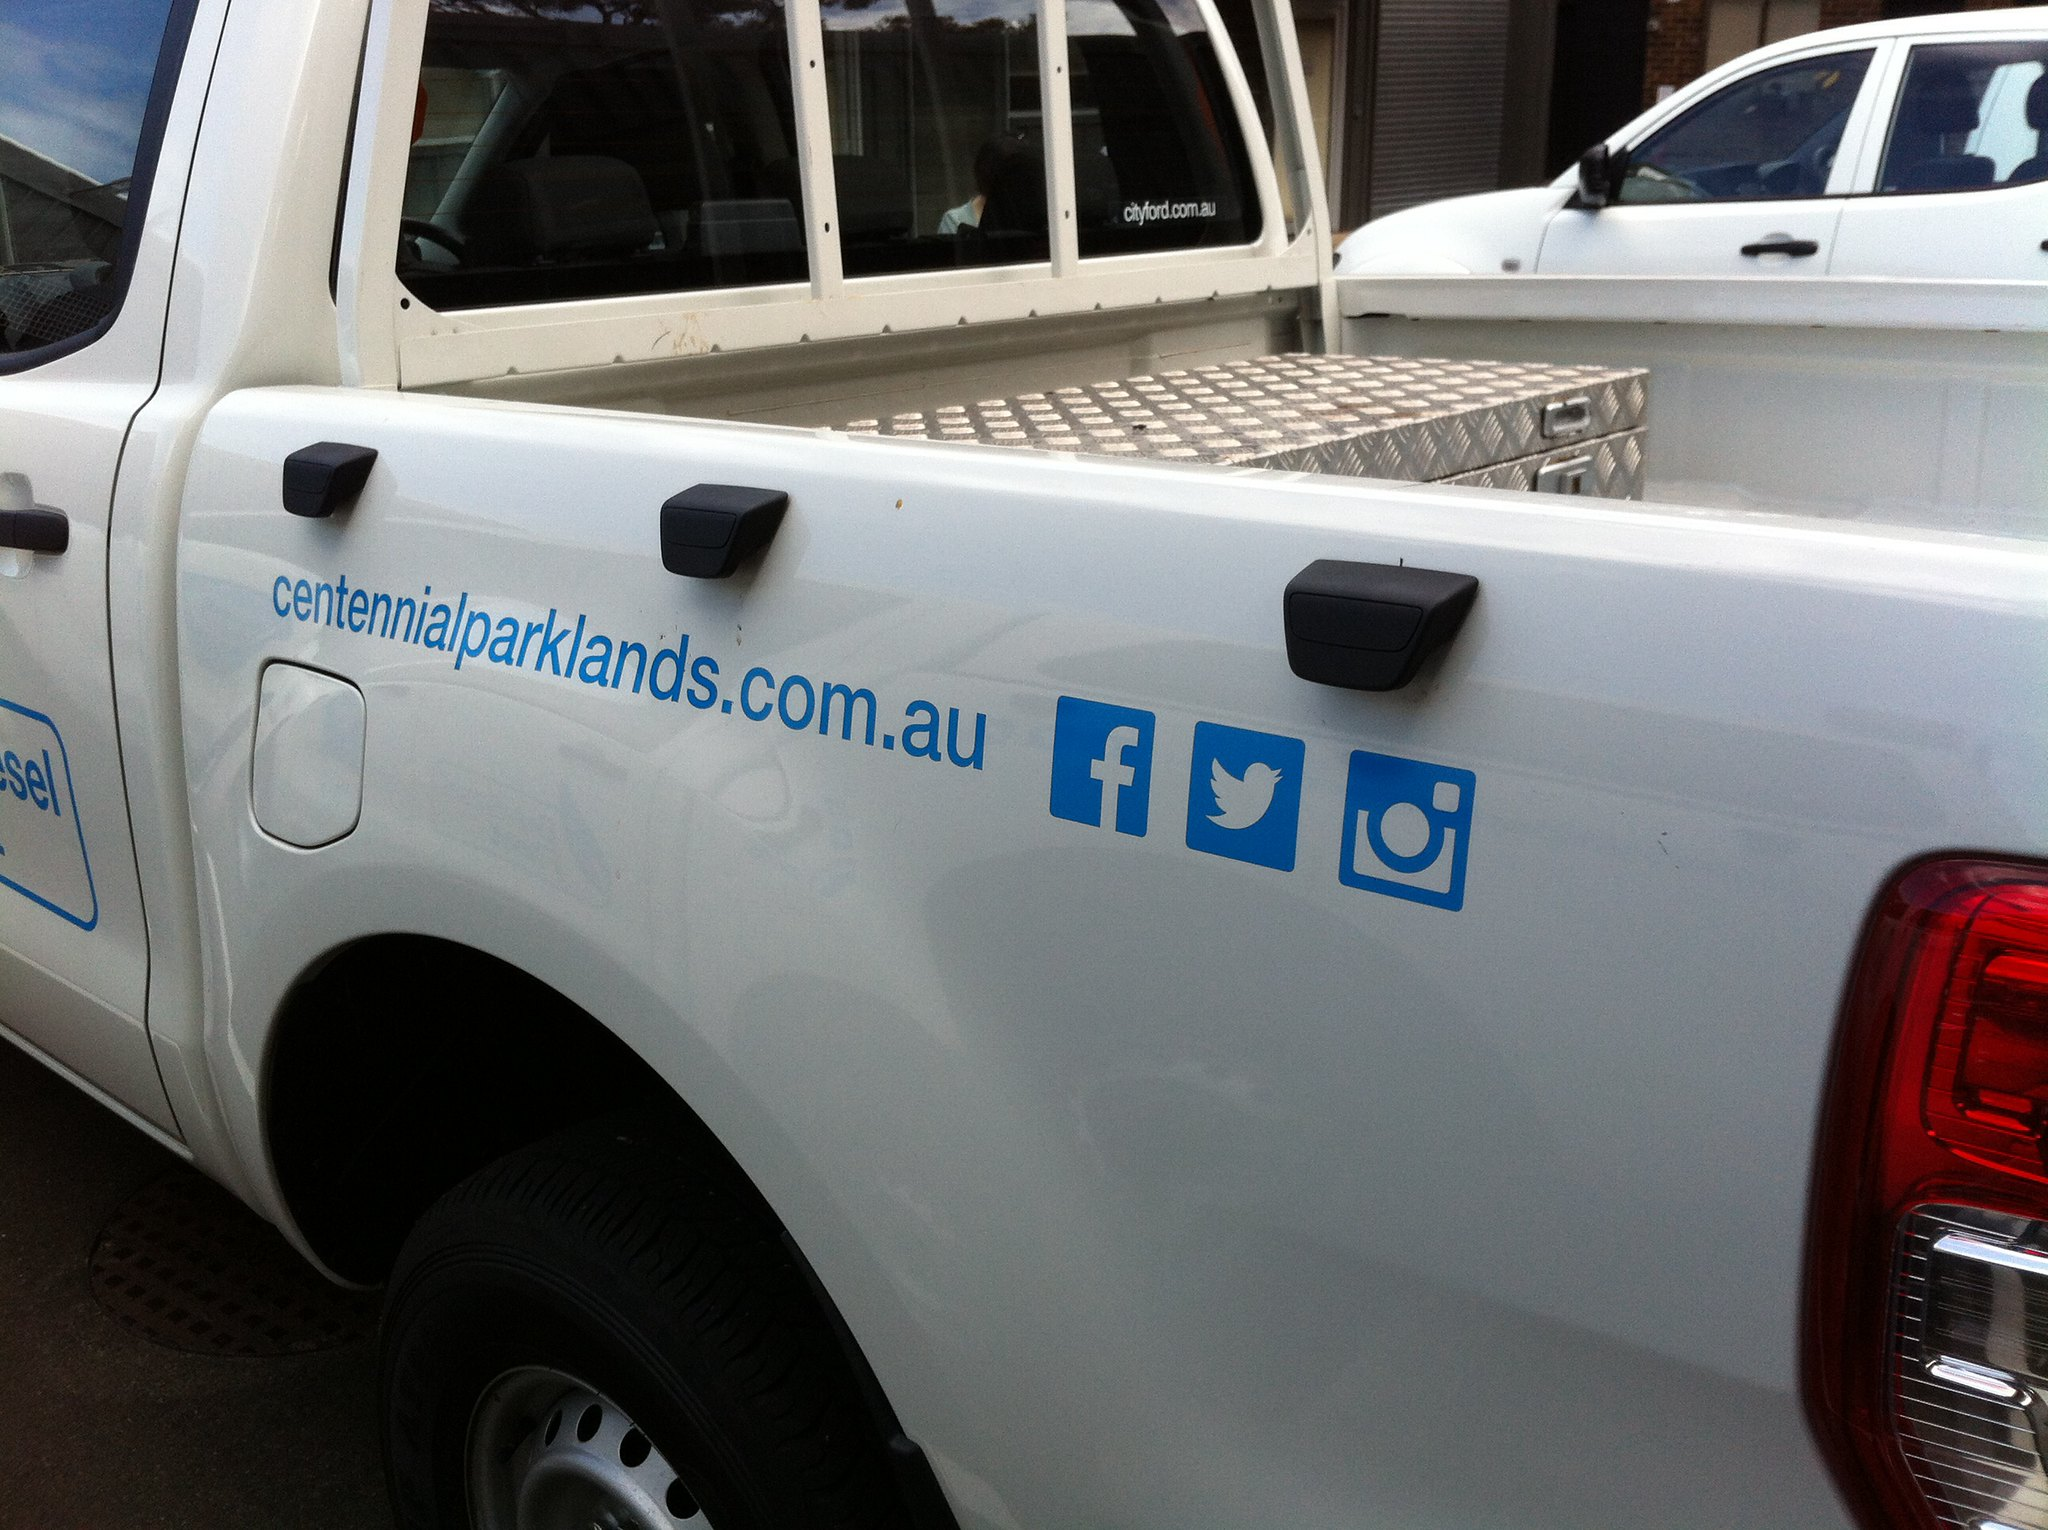 Centennial Parklands social media on truck